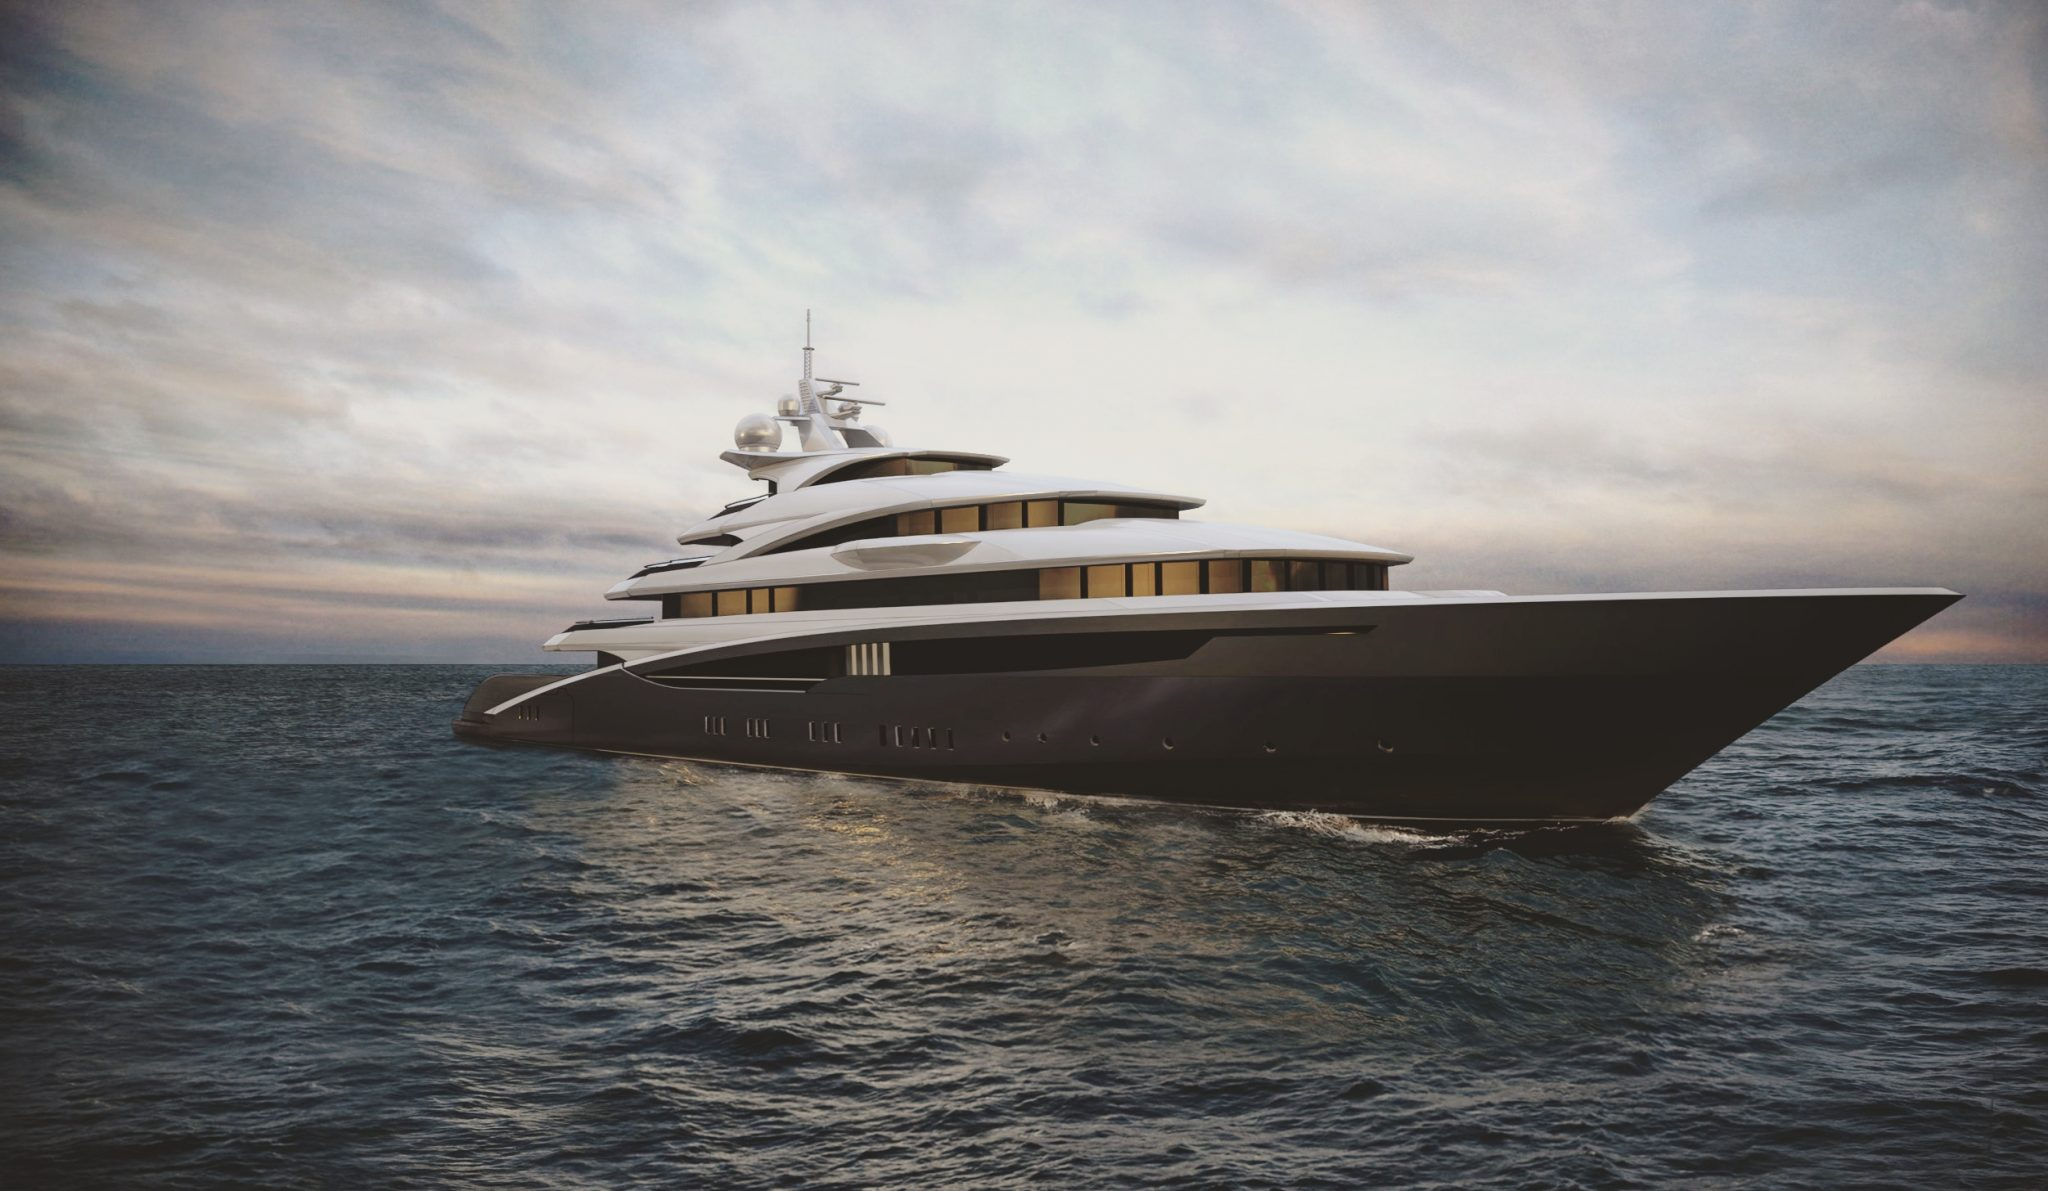 SEA STAR 85 luxury motor yacht designed for Oceanco Yacht